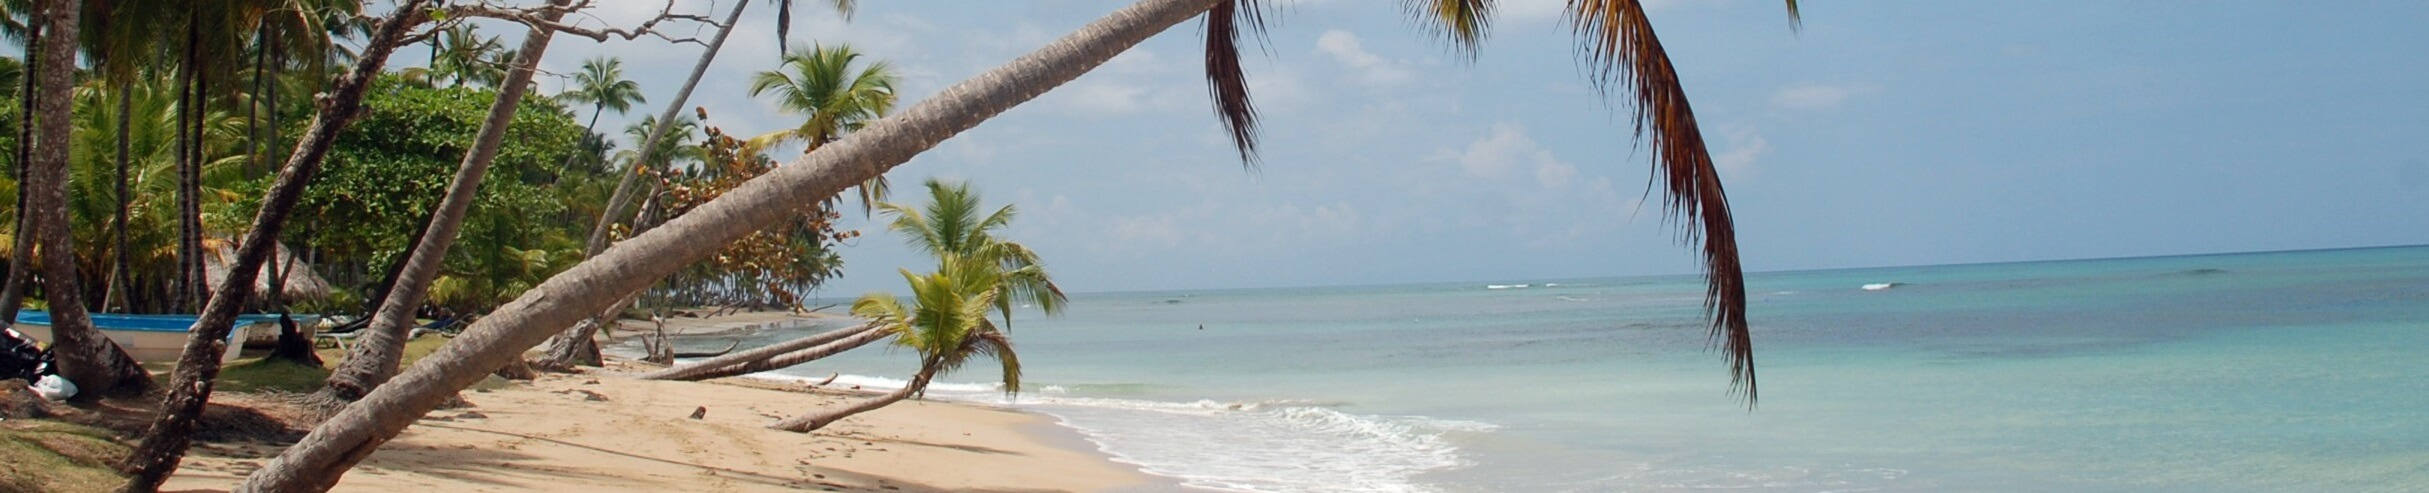 2nd best beaches in Dominican Republic-Playa Bonita